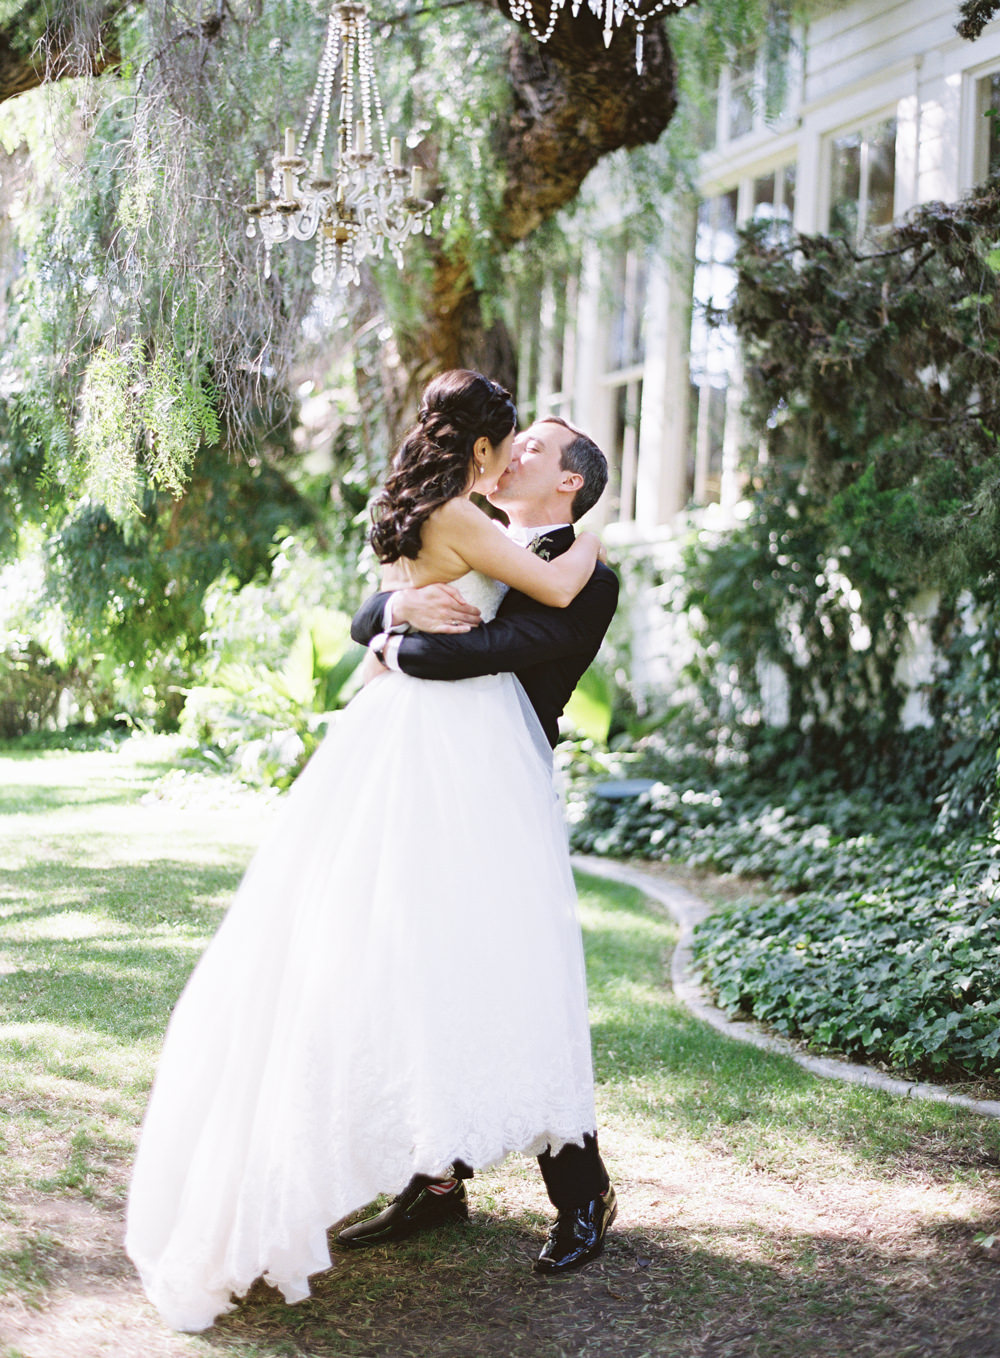 RomanticGardenWedding_WhiskersandWillow_046.jpg